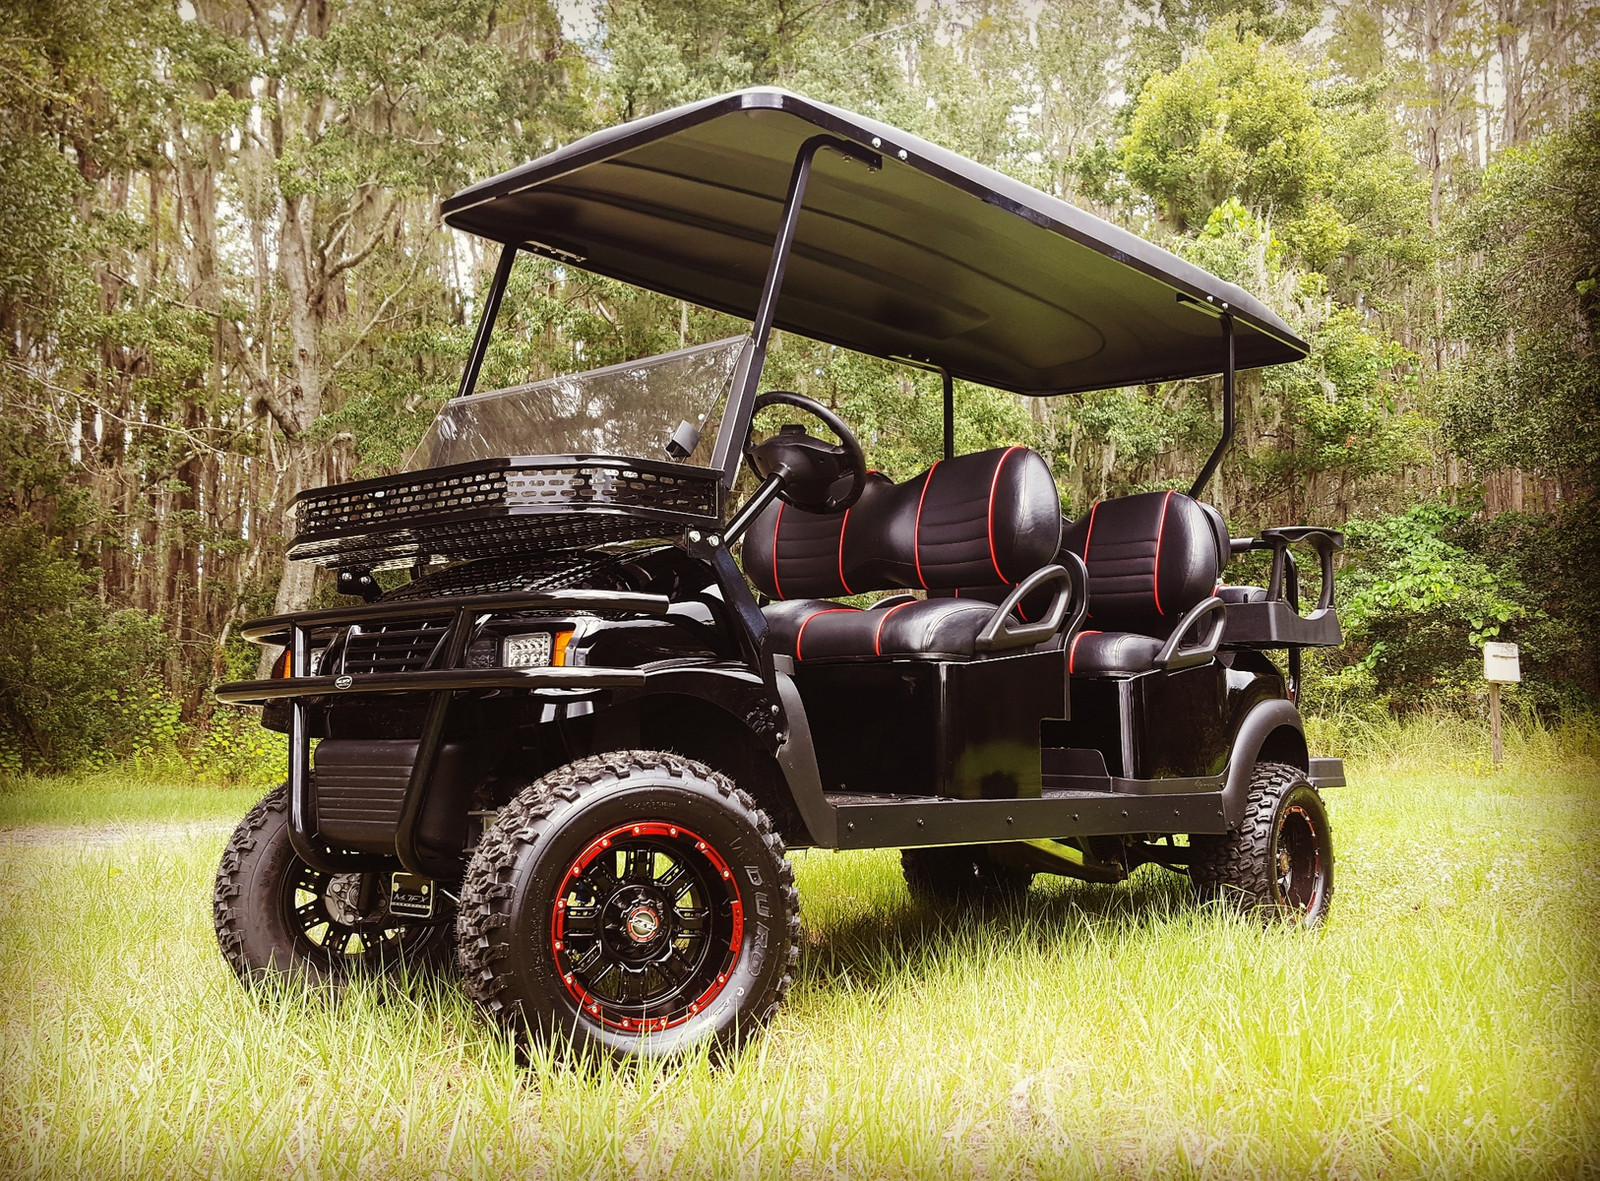 Good Guys Golf Carts, Lutz, FL - Golf Cart Repair and Sales All American Western Golf Carts on all american bus, all american tool box, all brands of golf carts, all american accessories, all american construction, all american parts, all american automobile, all american trailers, all american toy hauler, all american generator, all american landscape,